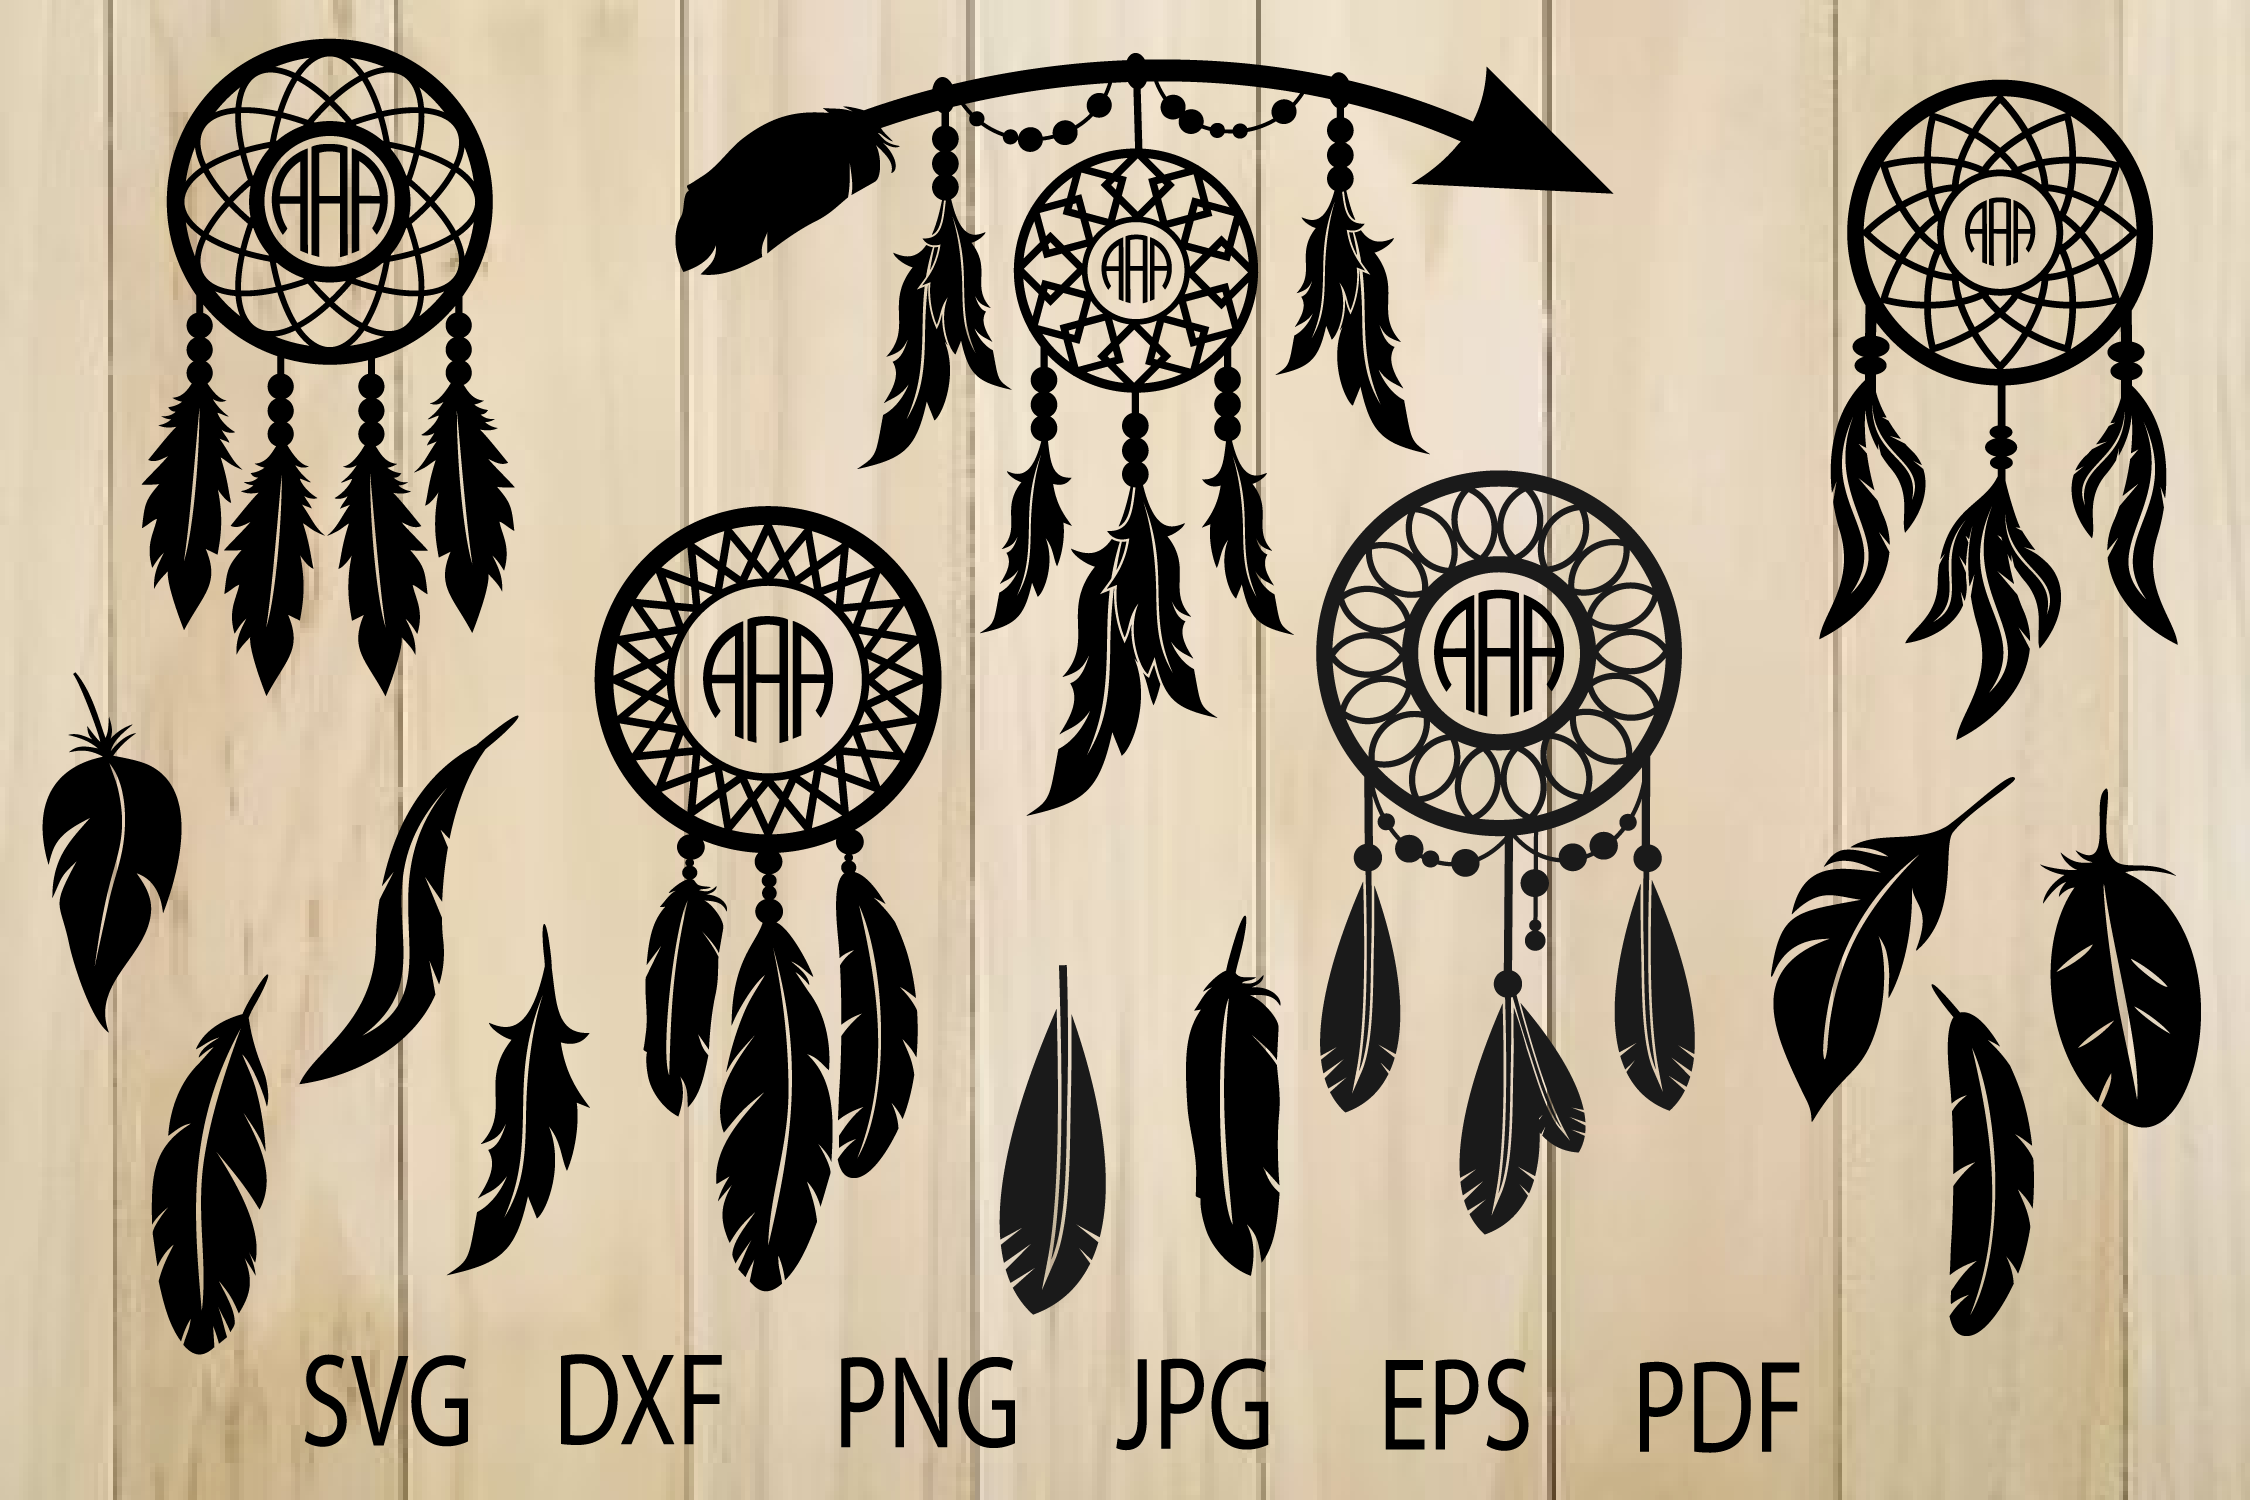 Download Free Dream Catchers Graphic By Yulnniya Creative Fabrica for Cricut Explore, Silhouette and other cutting machines.